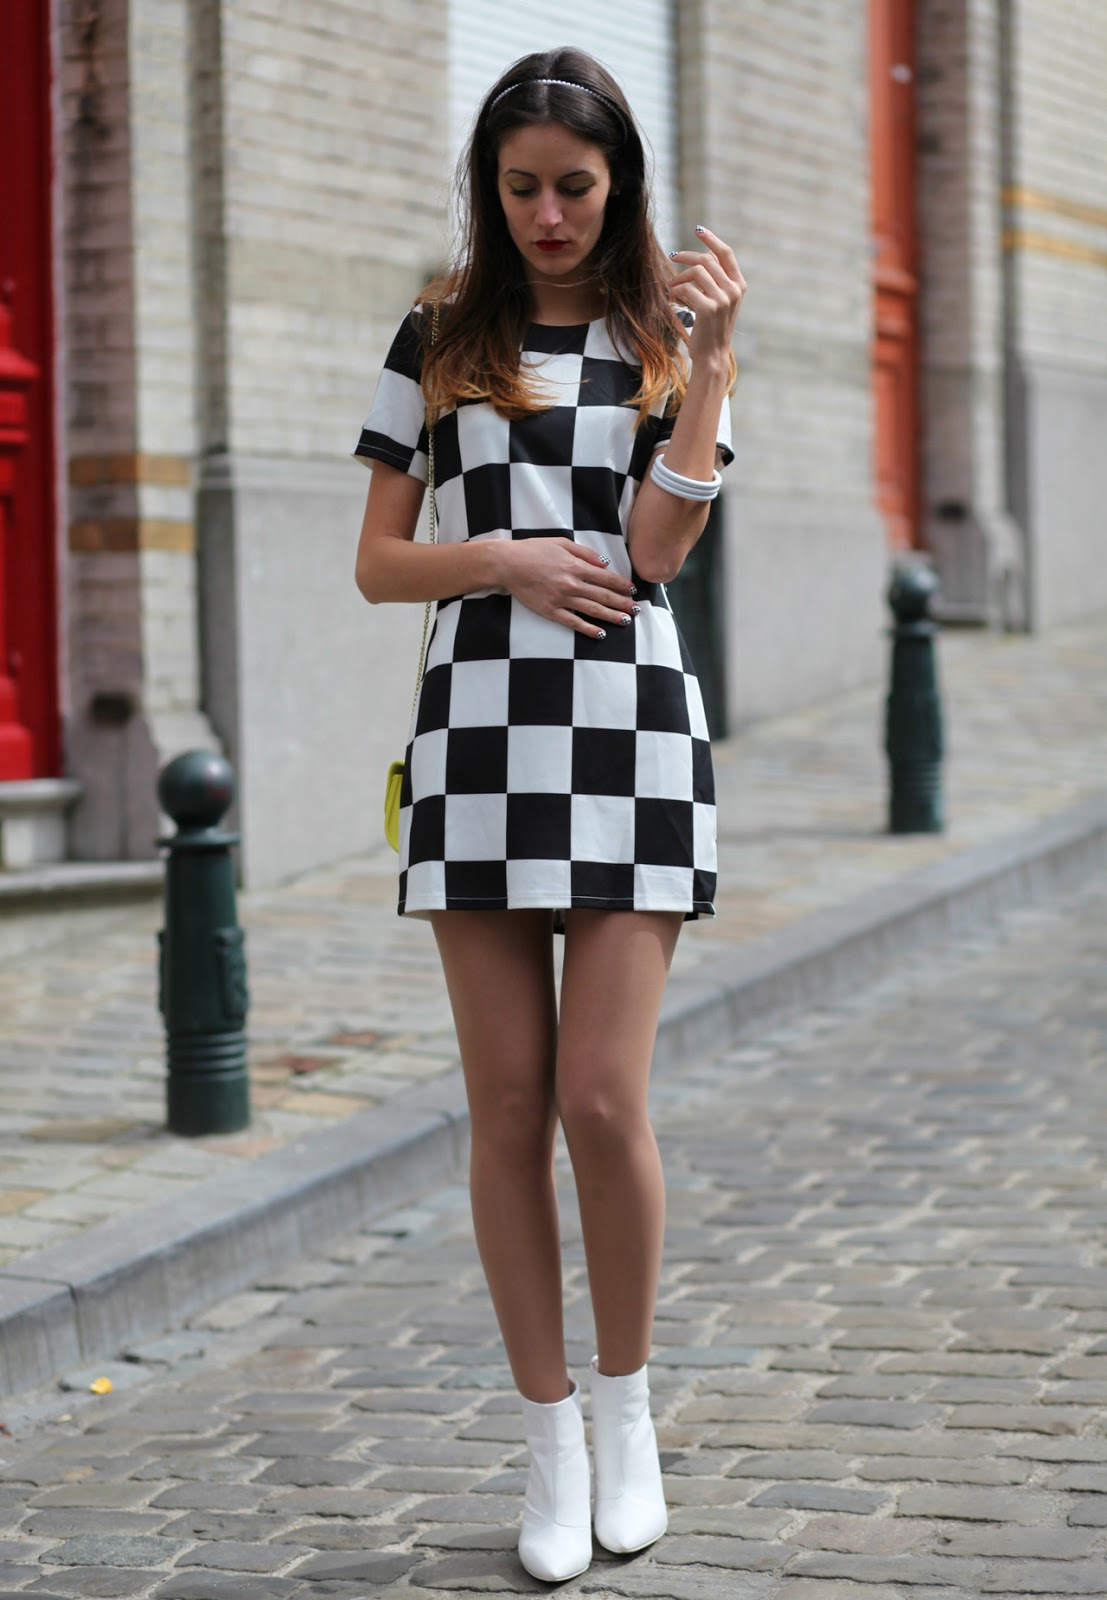 Favorito Outfit Cresima Ragazza PH18 » Regardsdefemmes MG18